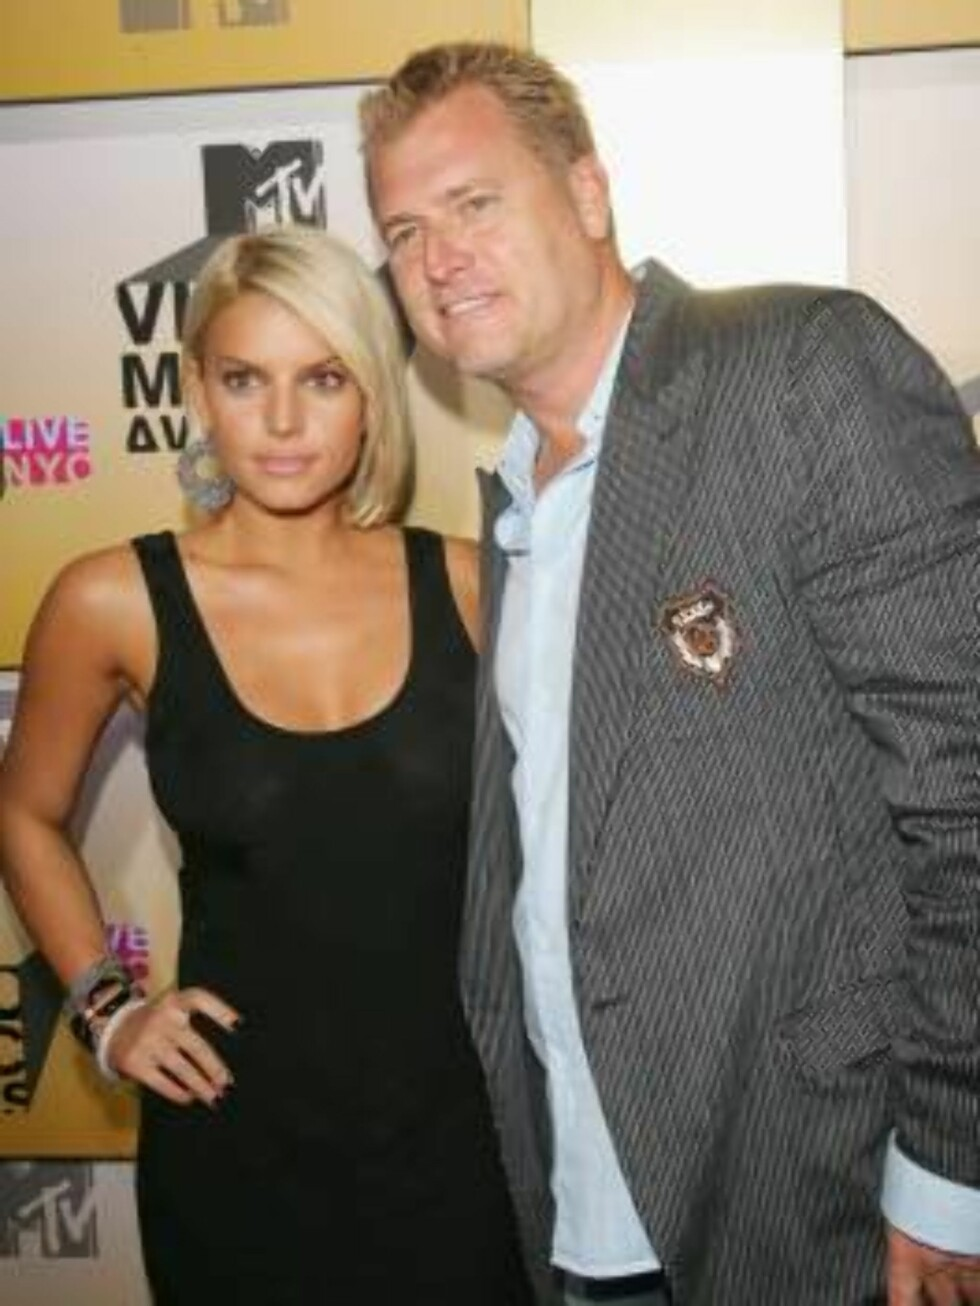 NEW YORK - AUGUST 31:  Singer Jessica Simpson and her father Joe Simpson attend the 2006 MTV Video Music Awards at Radio City Music Hall August 31, 2006 in New York City.  (Photo by Evan Agostini/Getty Images) *** Local Caption *** Jessica Simpson;Joe Sim Foto: All Over Press